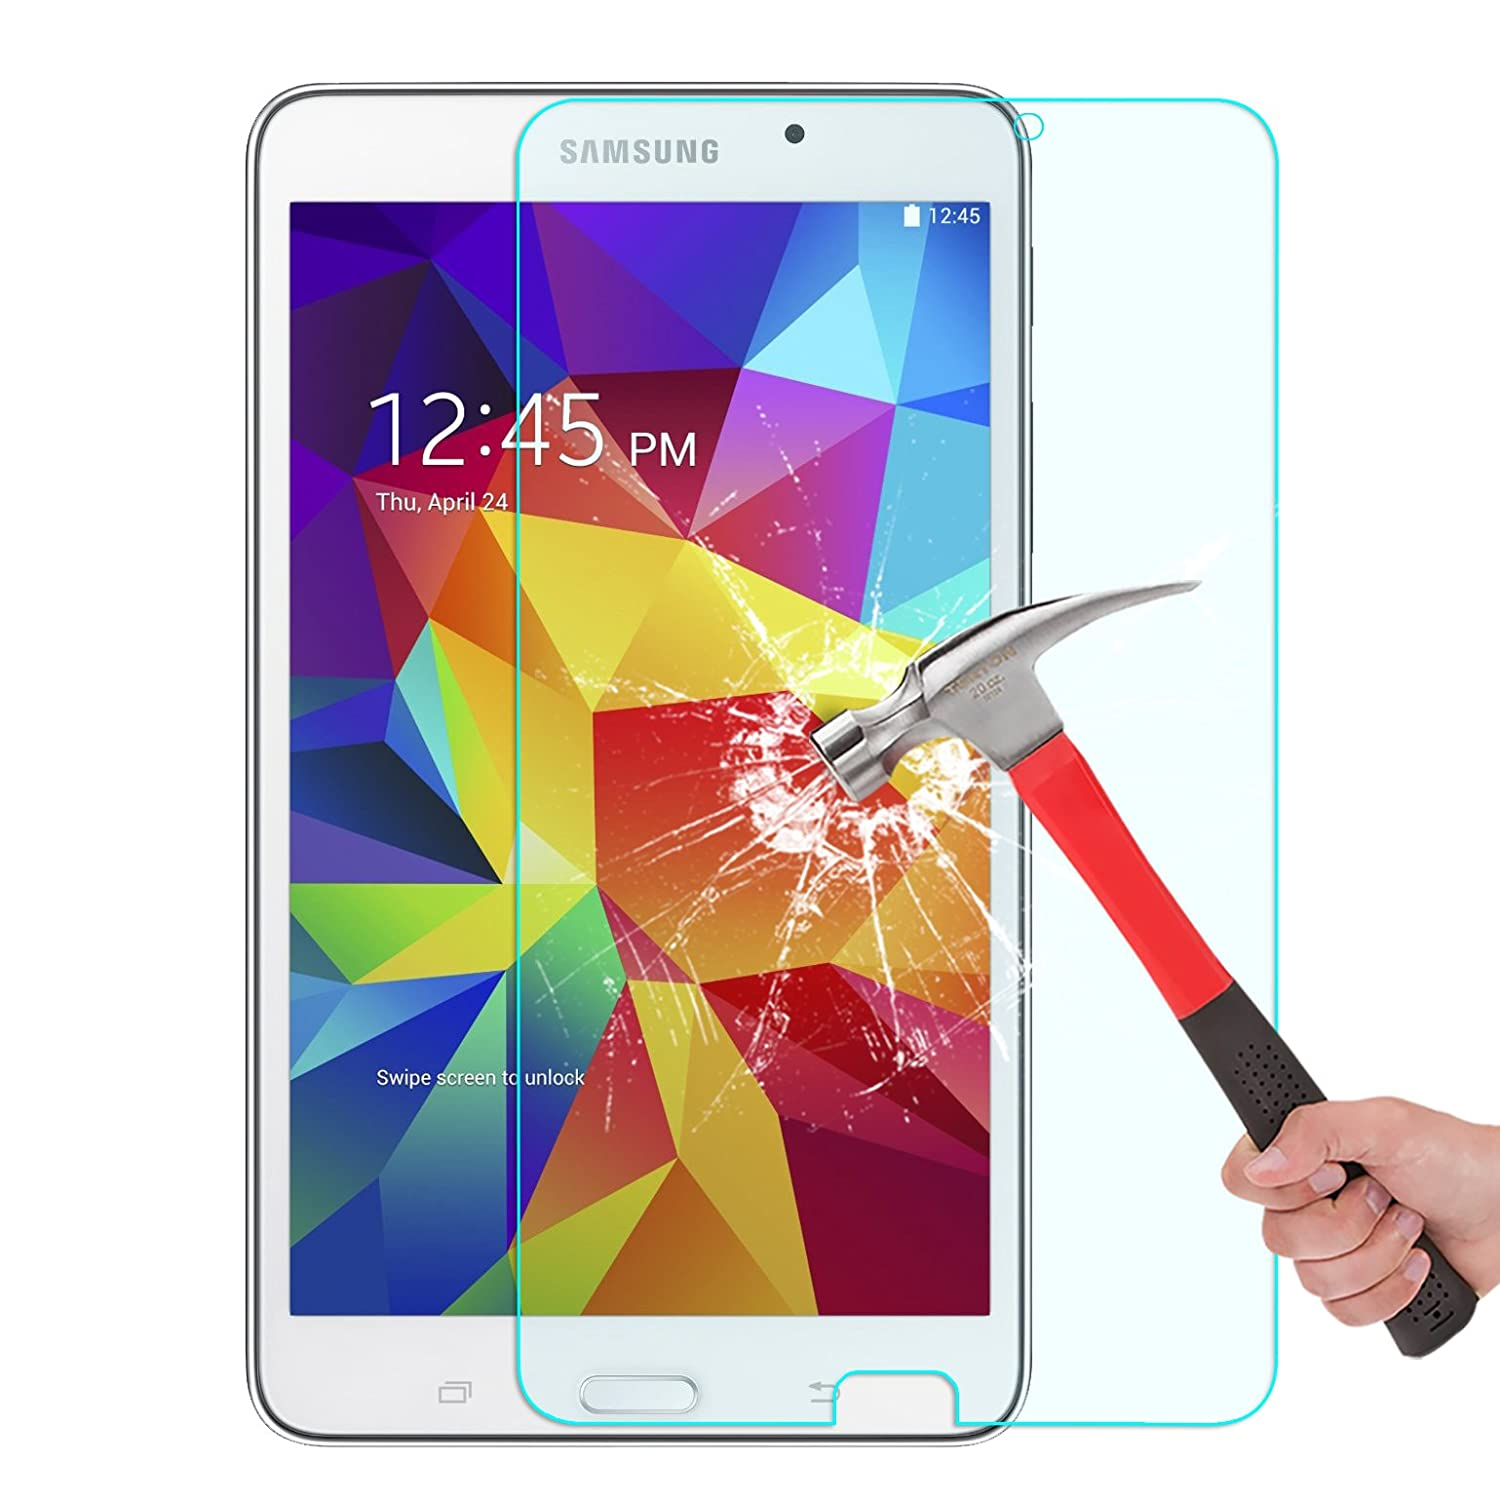 Samsung Galaxy Tab 4 7.0 Screen Protector, OMOTON Tempered Glass Screen Protector for Galaxy Tab 4 7-inch with (Anti Explosion) (9H Hardness) (High Definition) (Scratch Resist)(Lifetime warranty)